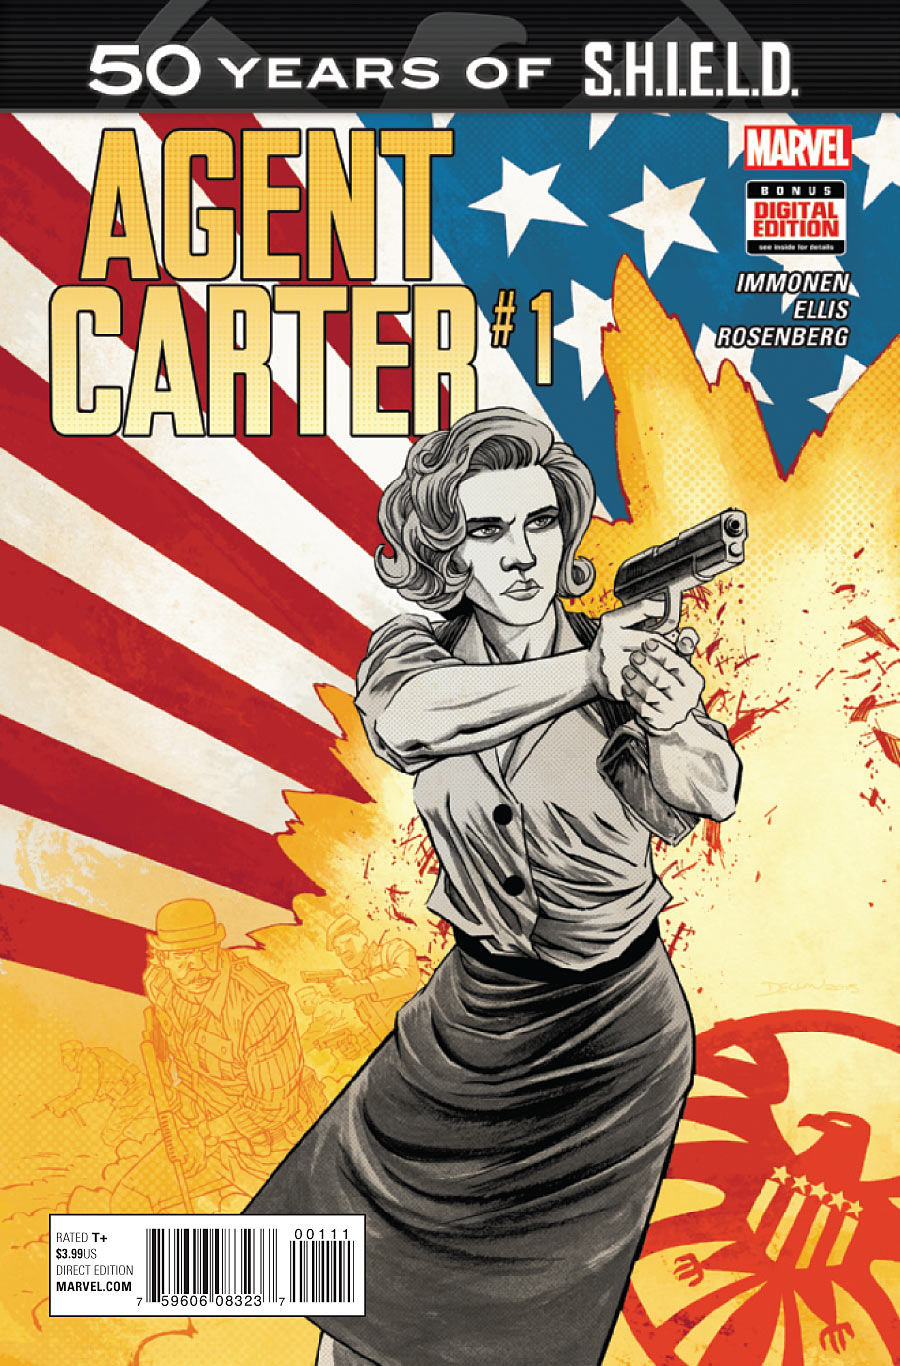 Agent Carter: S.H.I.E.L.D. 50th Anniversary Vol 1 1